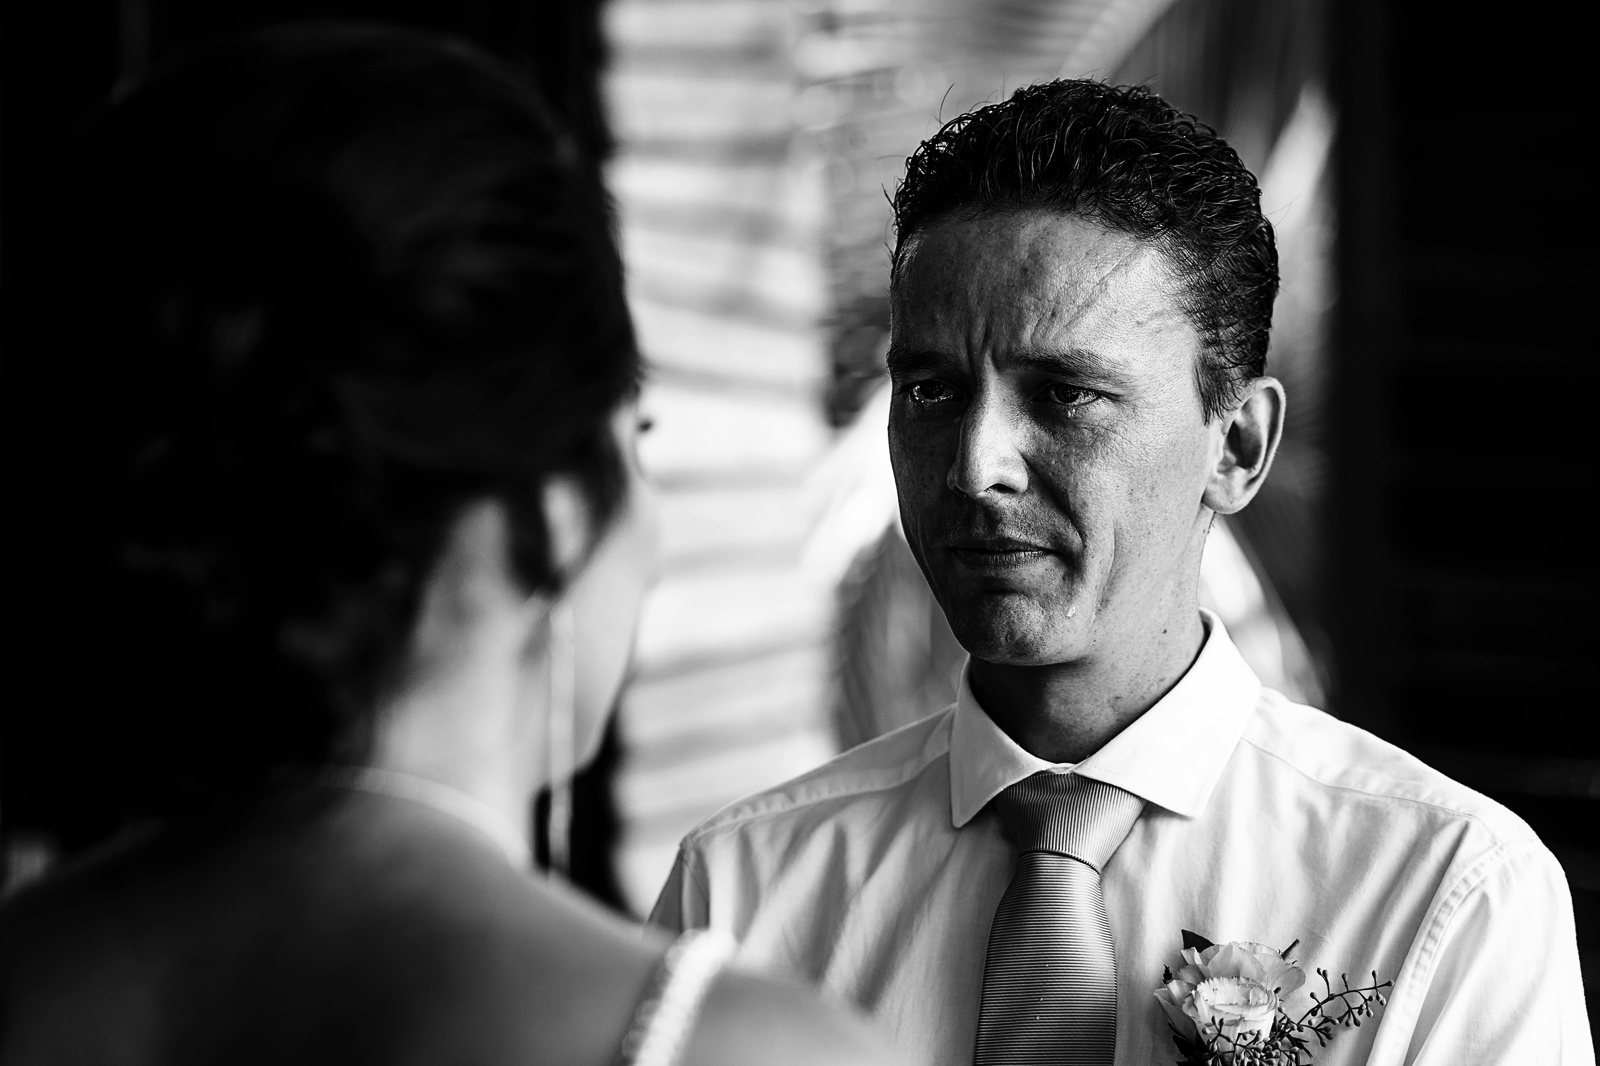 Groom tearful at the wedding ceremony during vows.